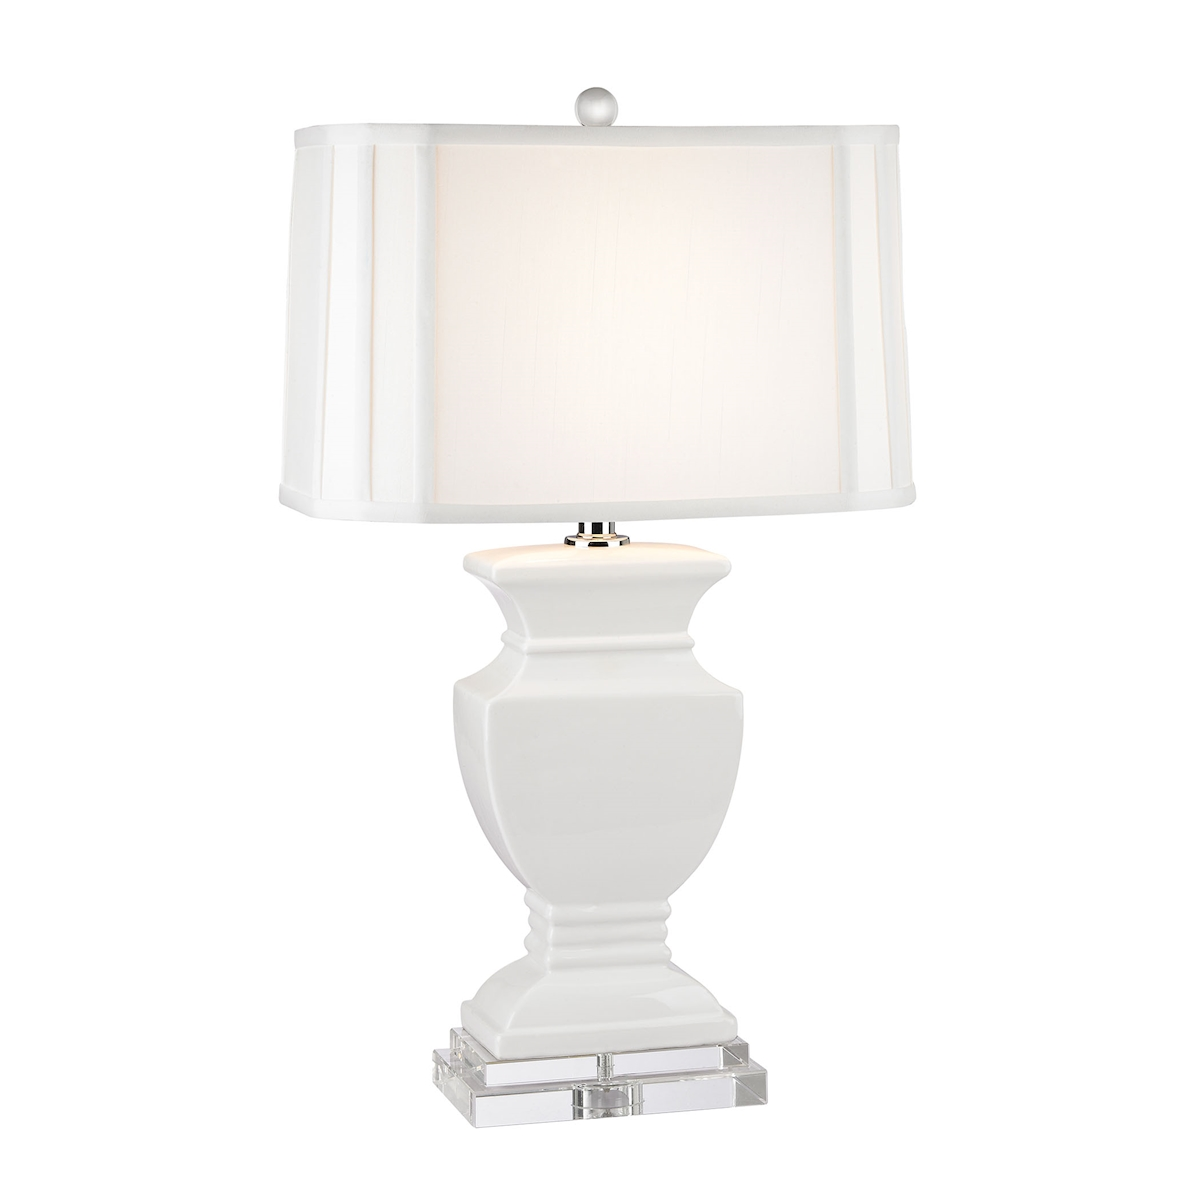 Dimond Trophy 27 Ceramic Table Lamp in Gloss White